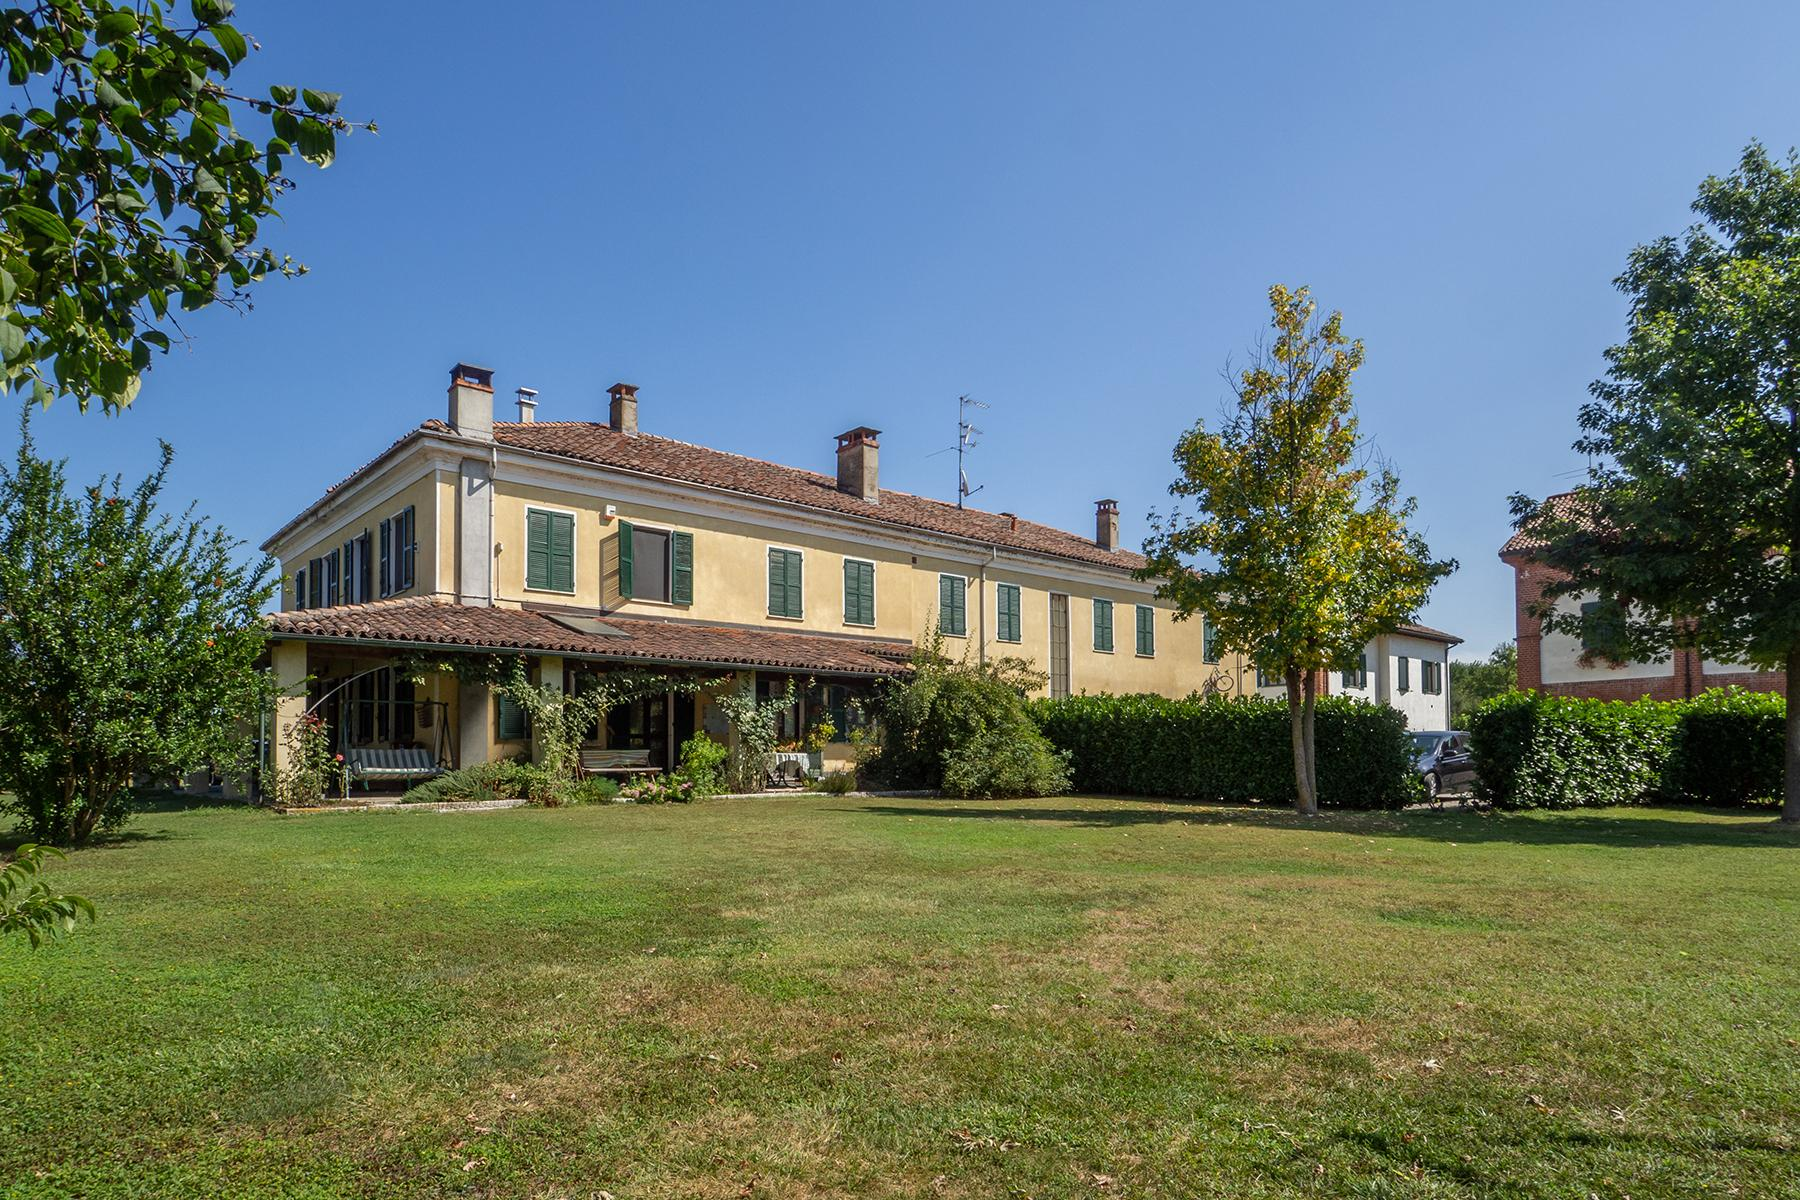 Wonderful estate in Monferrato region - 5